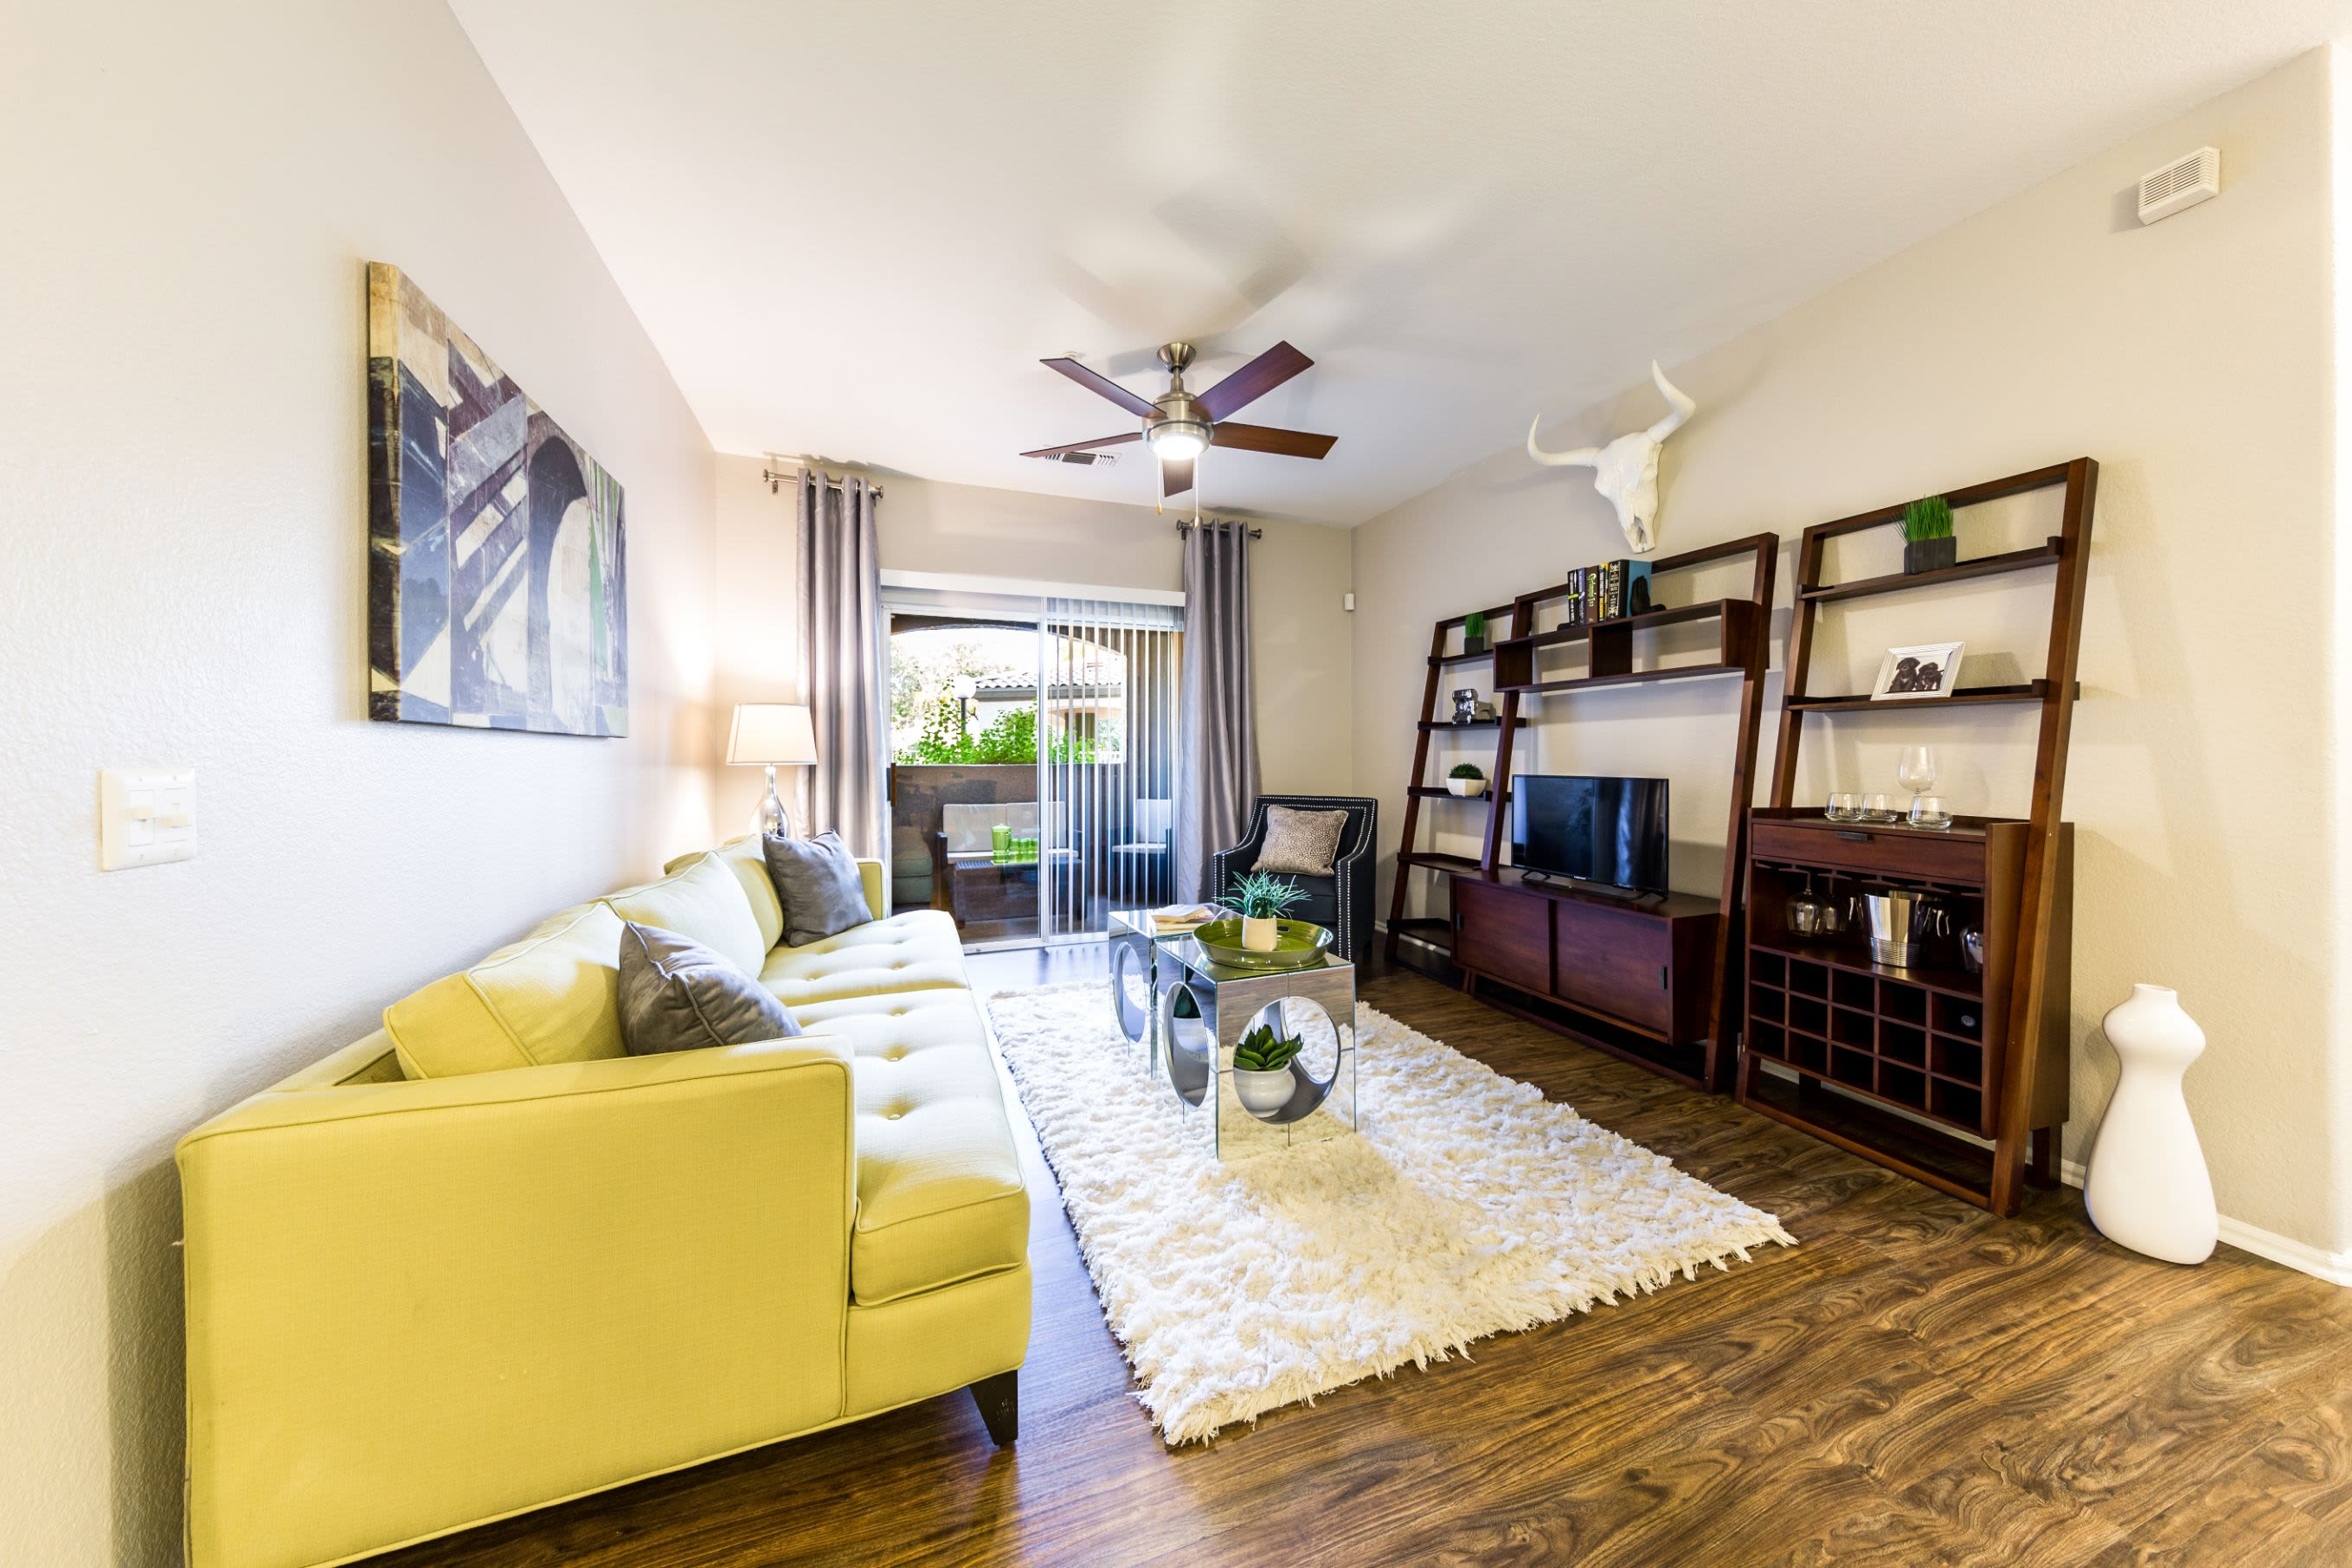 Living room with ceiling fan at Marquis at Arrowhead in Peoria, Arizona